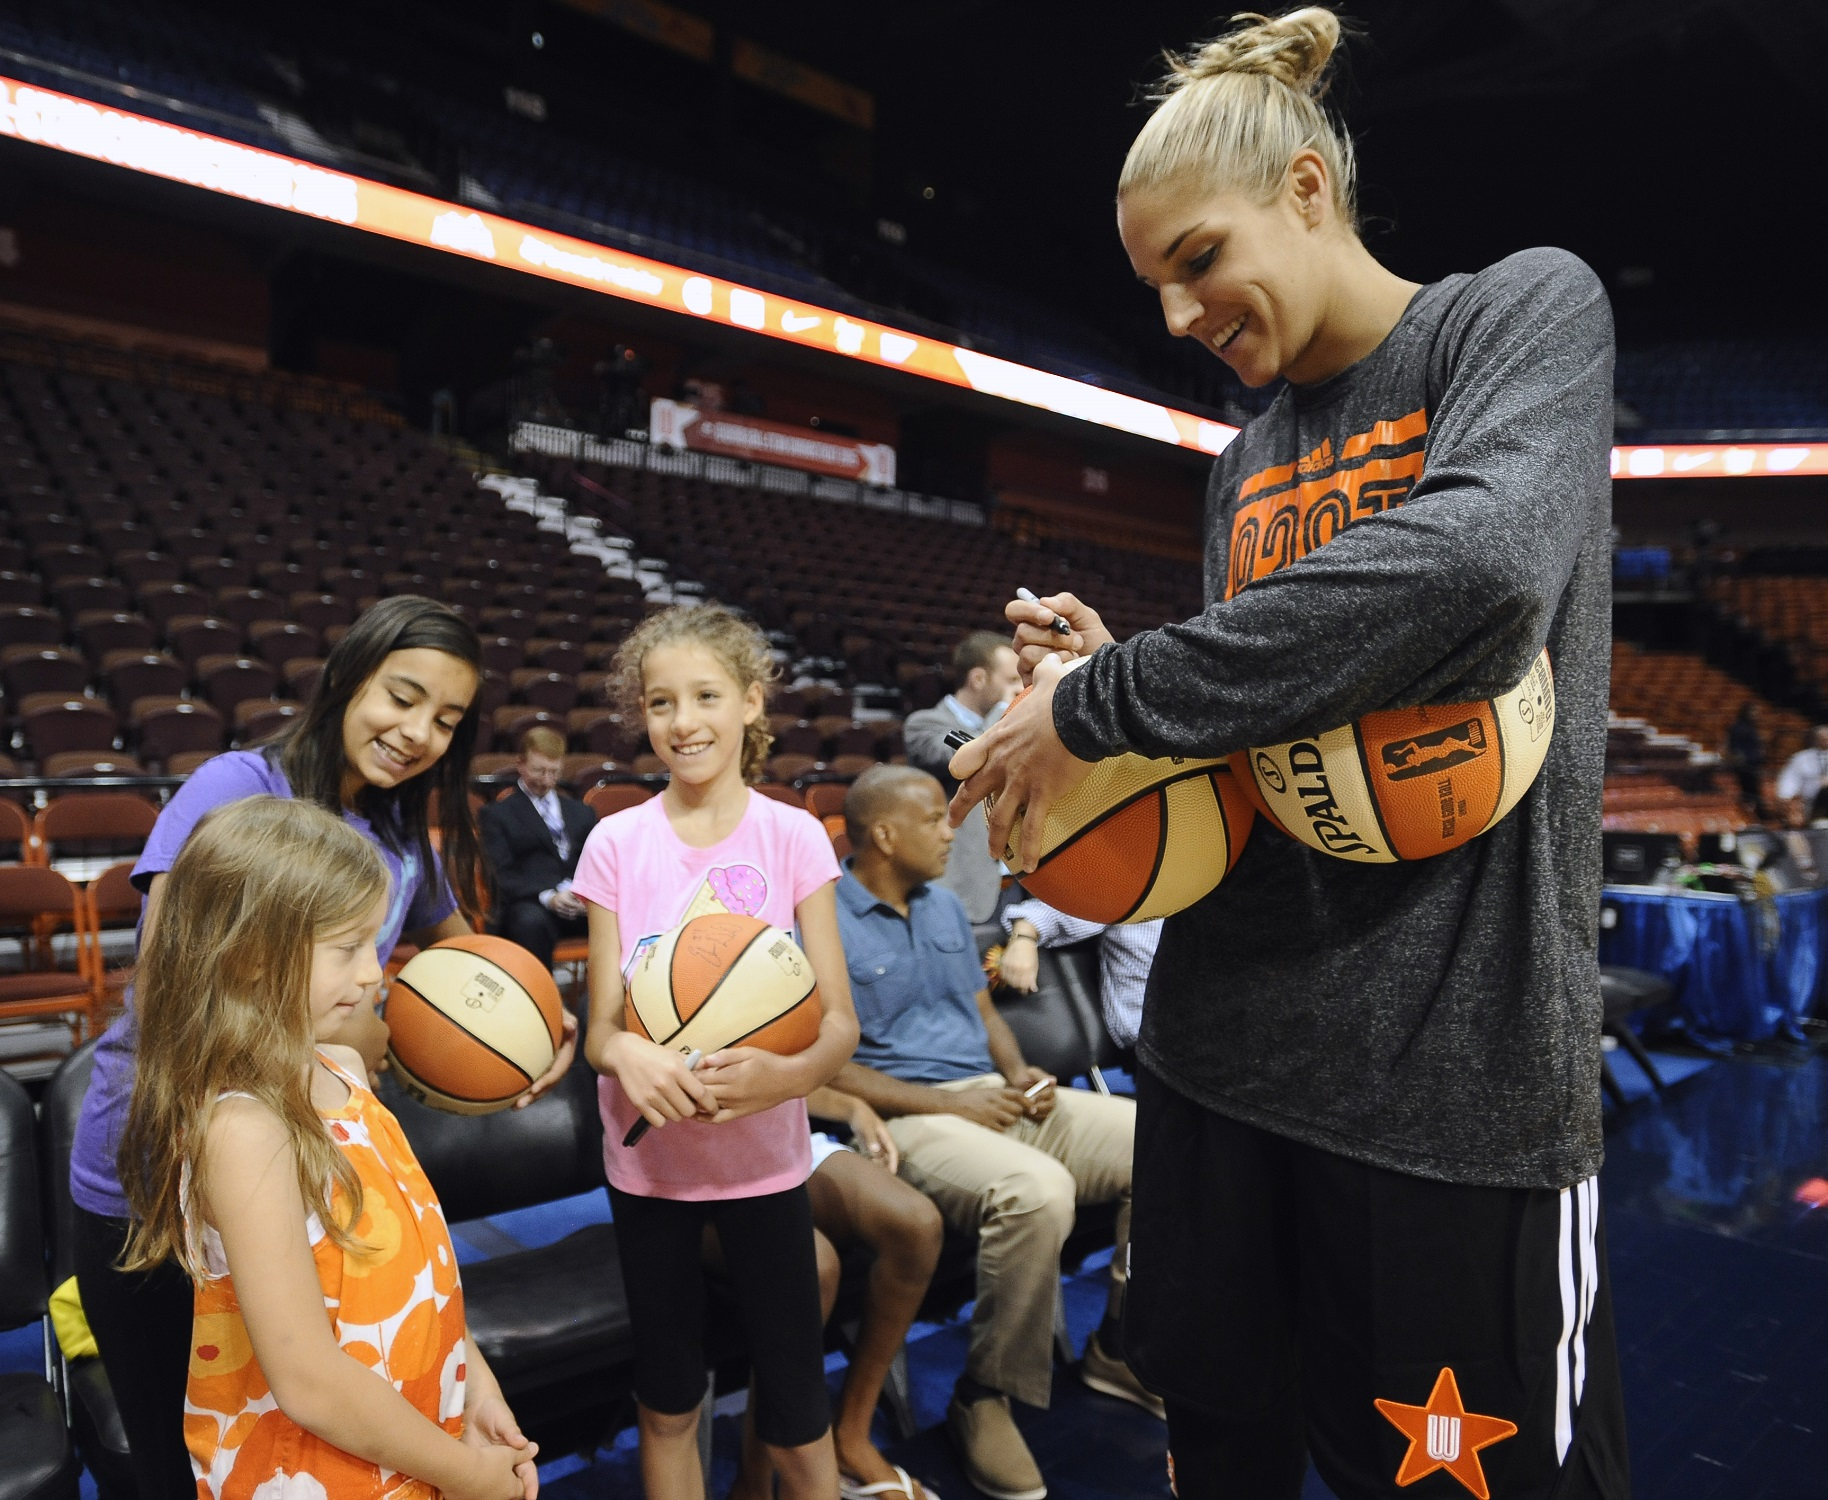 For WNBA star Elena Delle Donne, it's all Sky, no limit